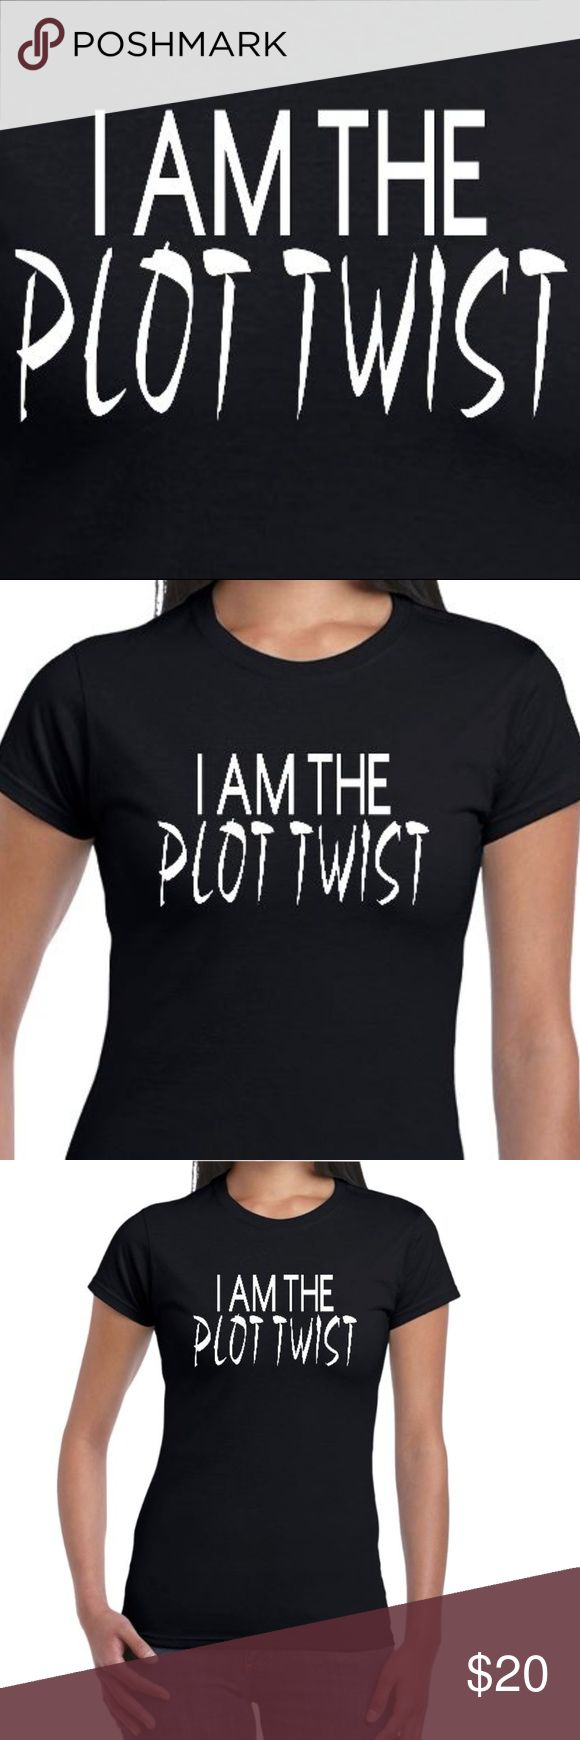 """Reflective or Glow In The Dark Plot Twist Tee """"I Am The Plot Twist"""" T-Shirt.  IMPORTANT: Default order is """"Glow In The Dark"""". For the """"Reflective"""" option, please tag us upon ordering!  - Design & Design Material: 100% Made In The USA - Base Tees Are Fitted & Cotton Plant Based: No Slave Labor, No Sweatshops, etc - Glow In the Dark Designs Are White & Glow a Vibrant Green. - Reflective Designs are Silver & Reflect Bright White (Can be seen from 500+ Feet Away!) - Great for clubs, raves…"""